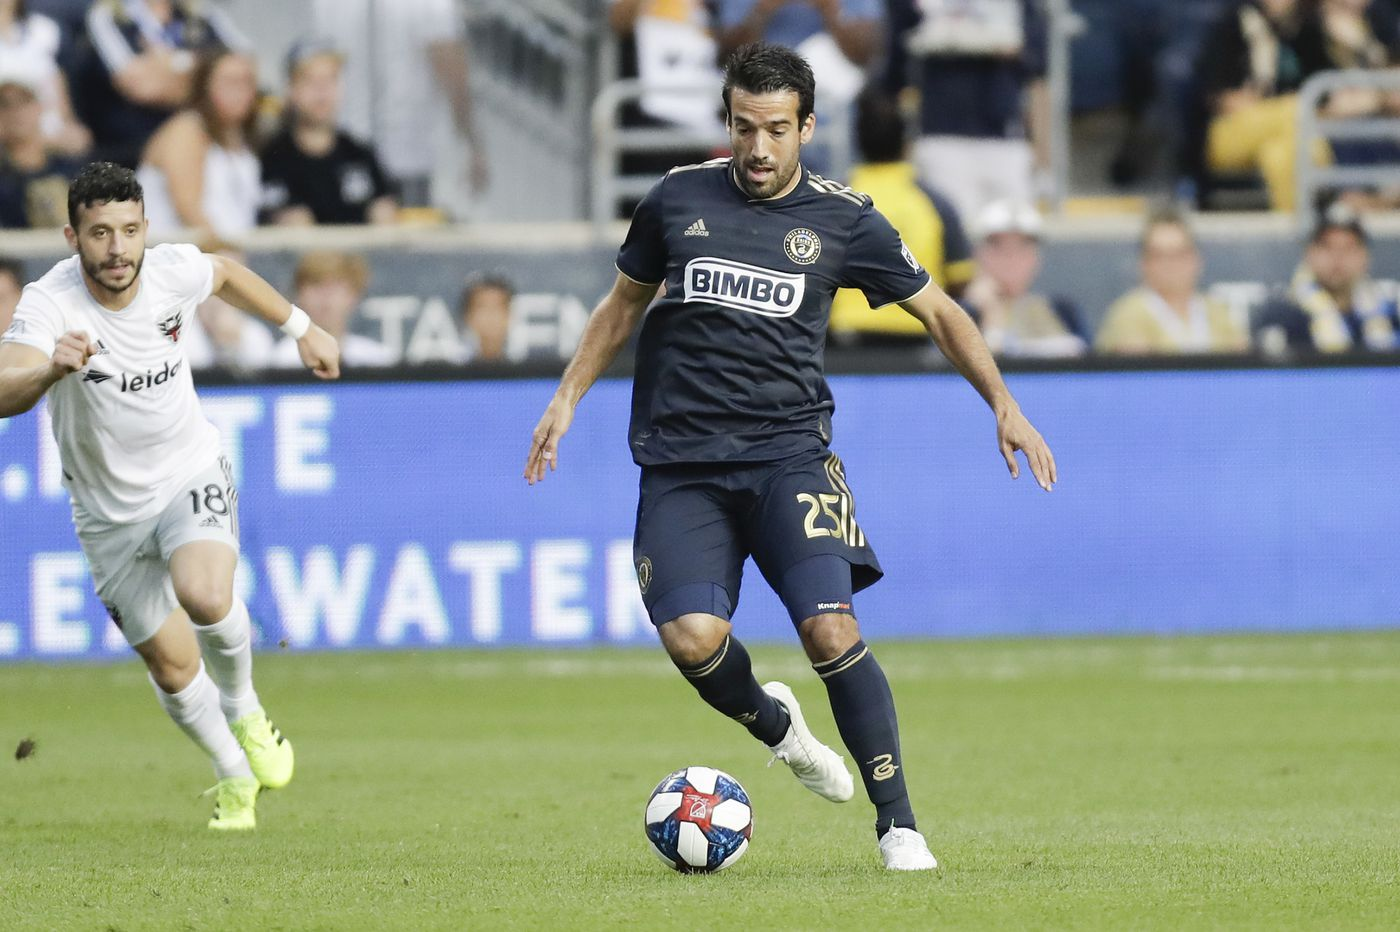 Union re-sign fan favorite Ilsinho to one-year contract